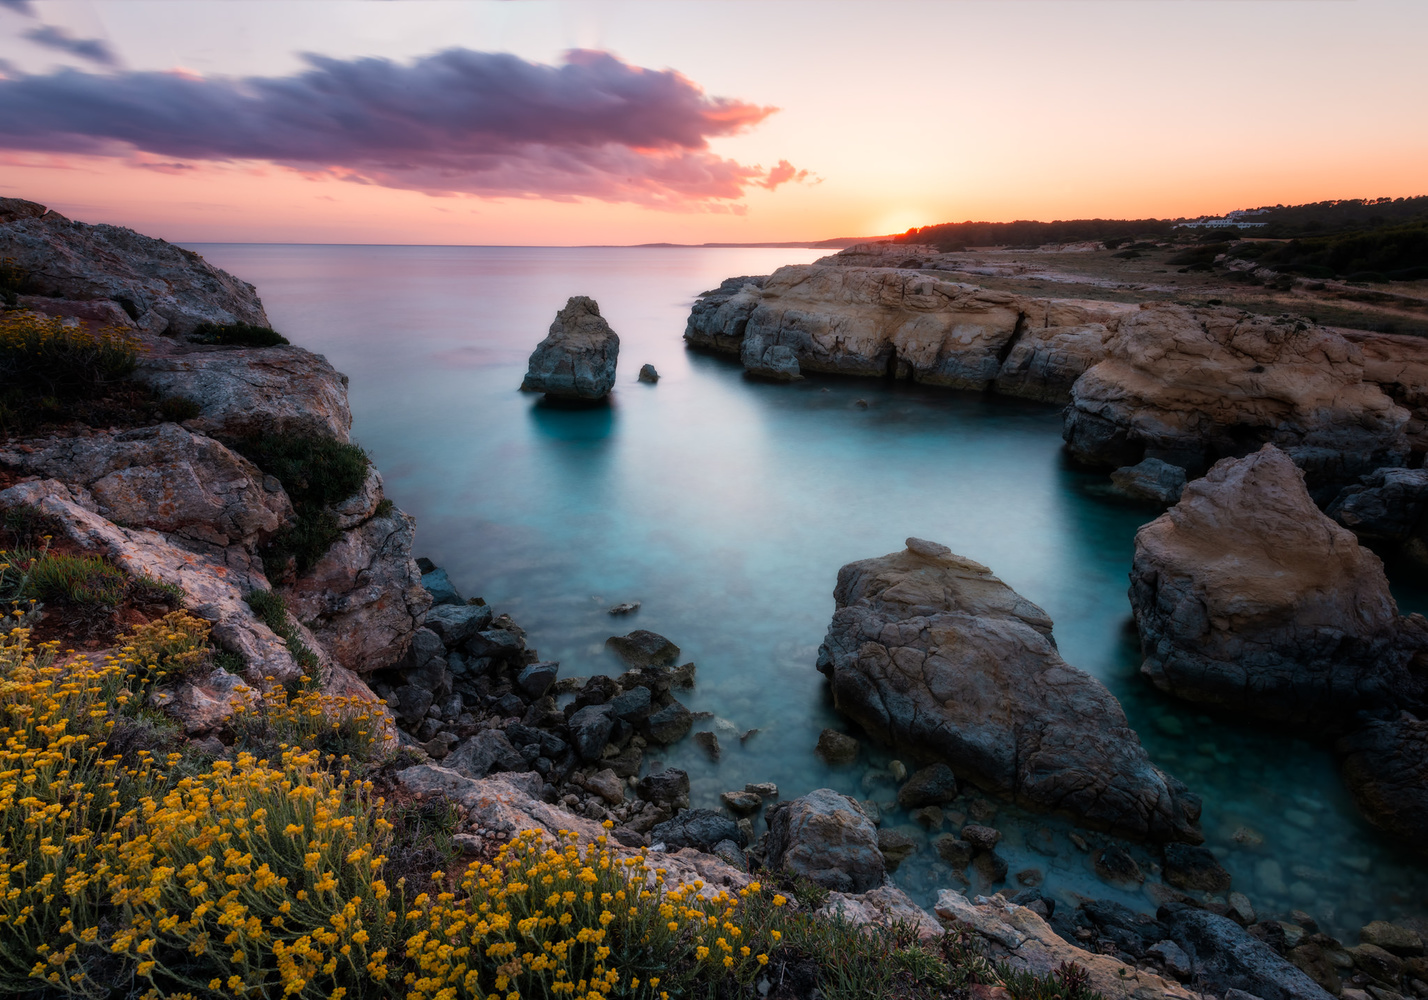 Sunset on Atalis Beach | Menorca, Spain by Nico Trinkhaus